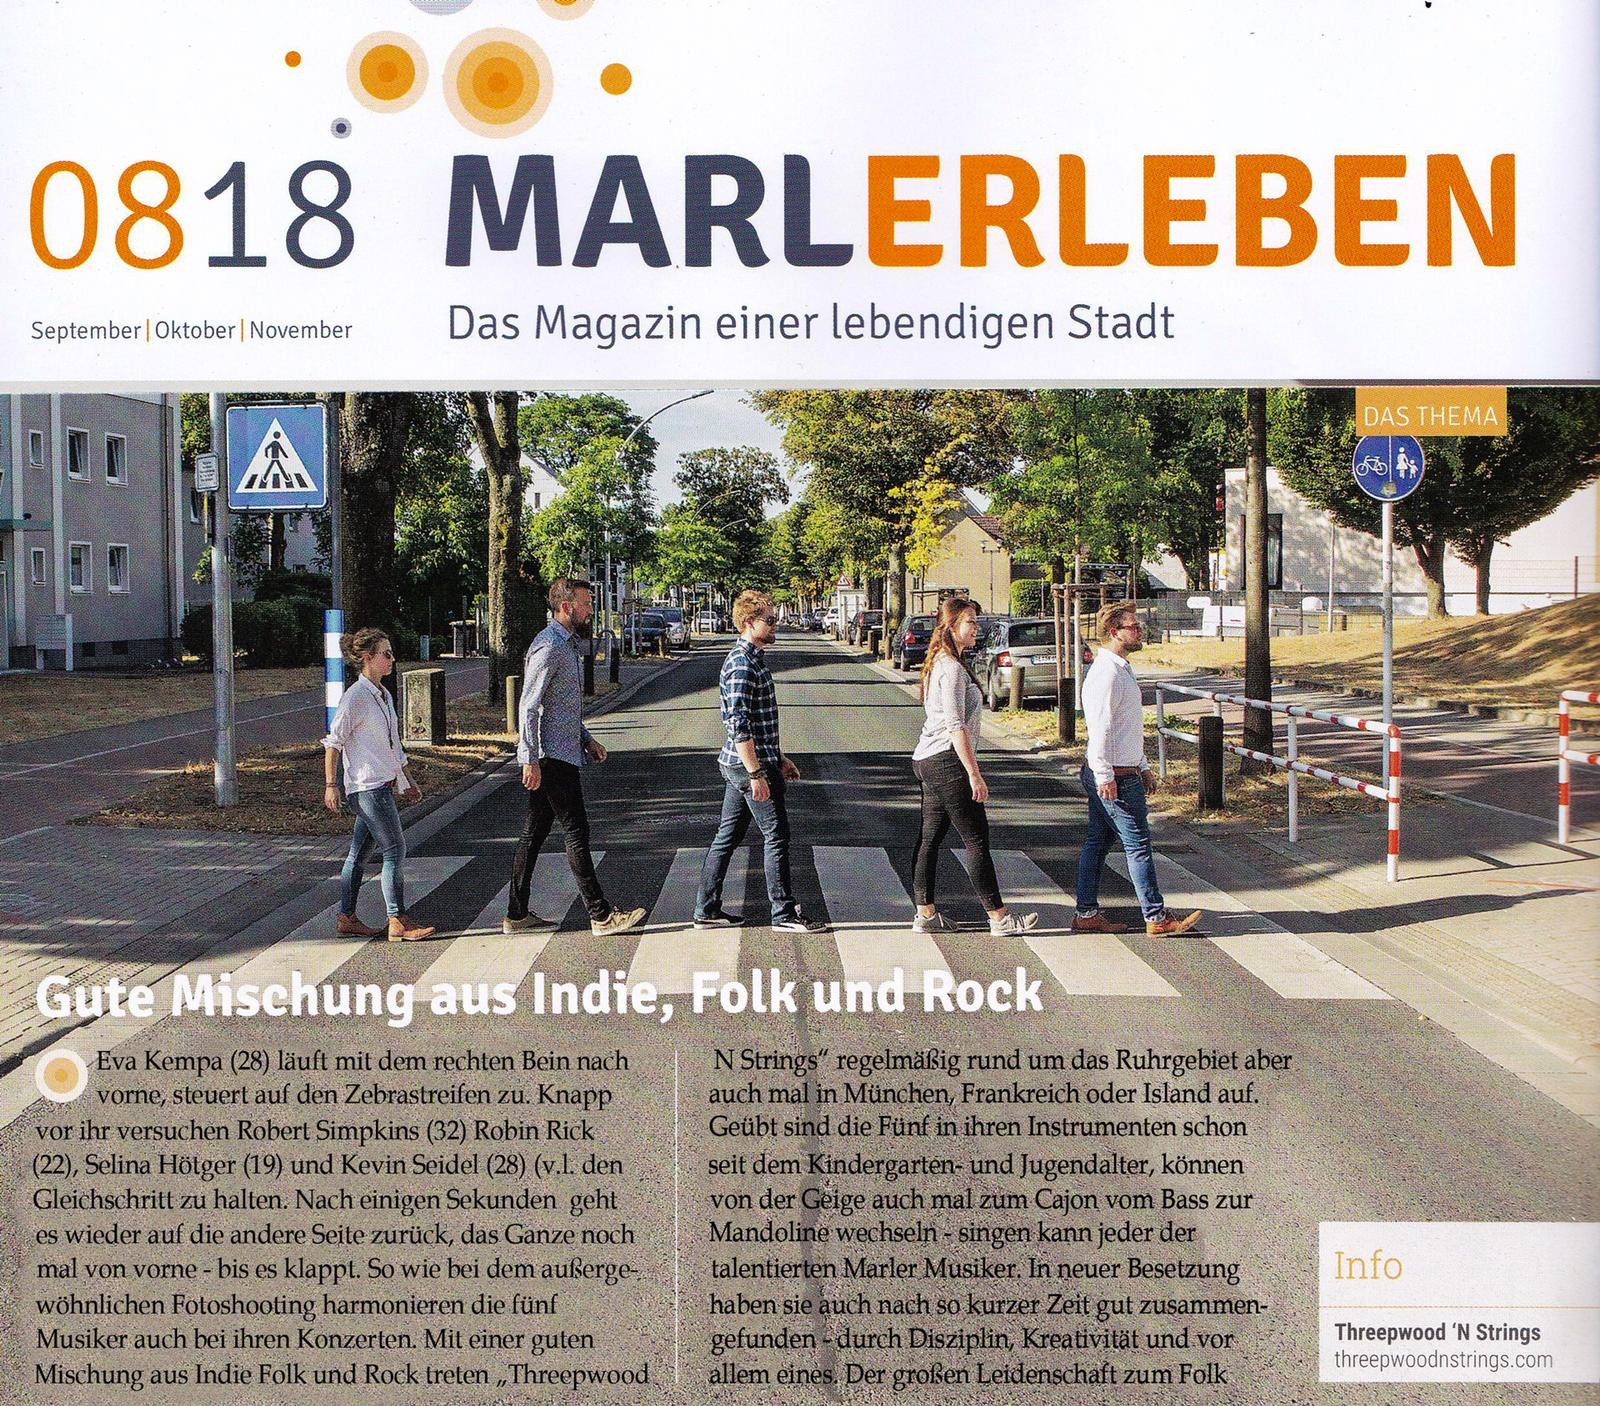 Threewood N Strings - Stadtmagazin Marl 2018